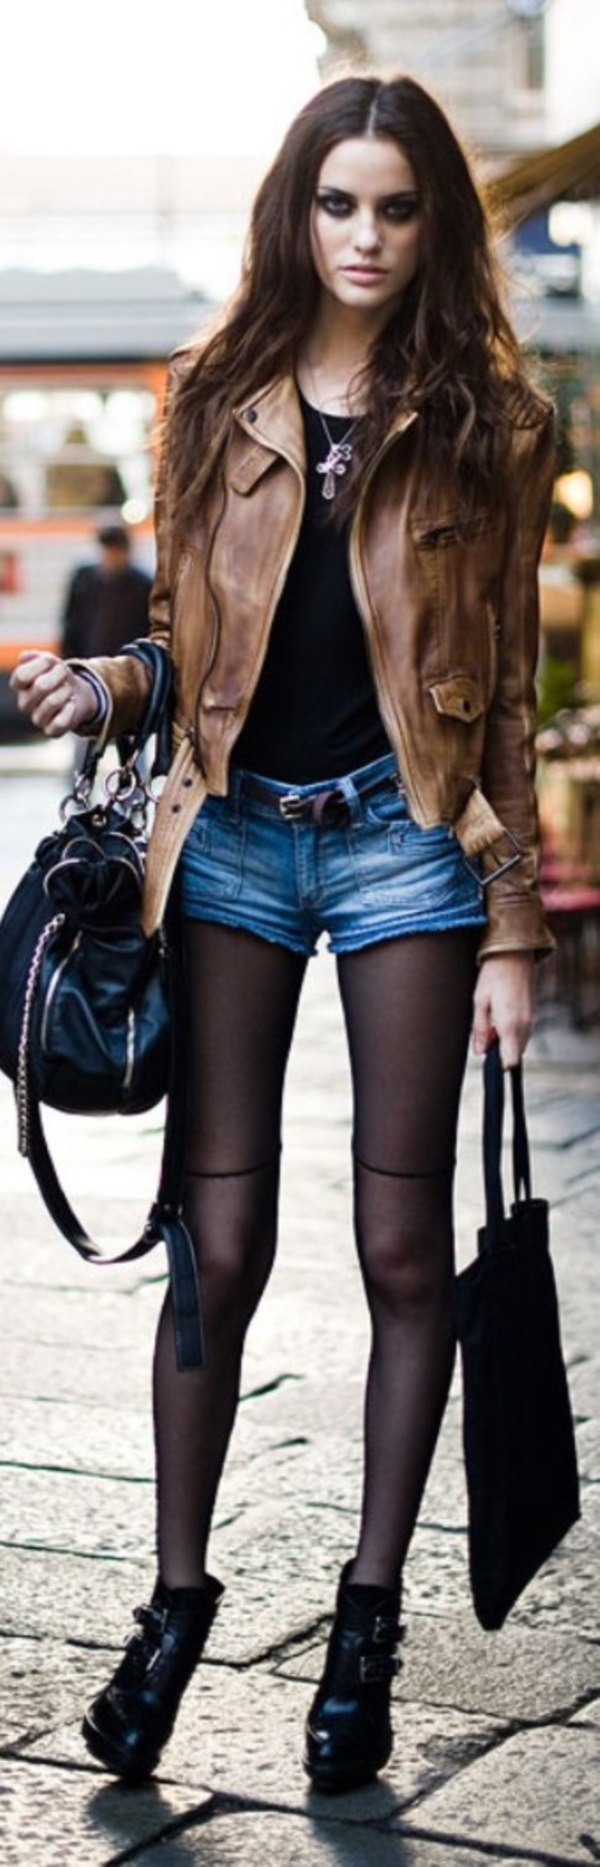 cute edgy outfits0181